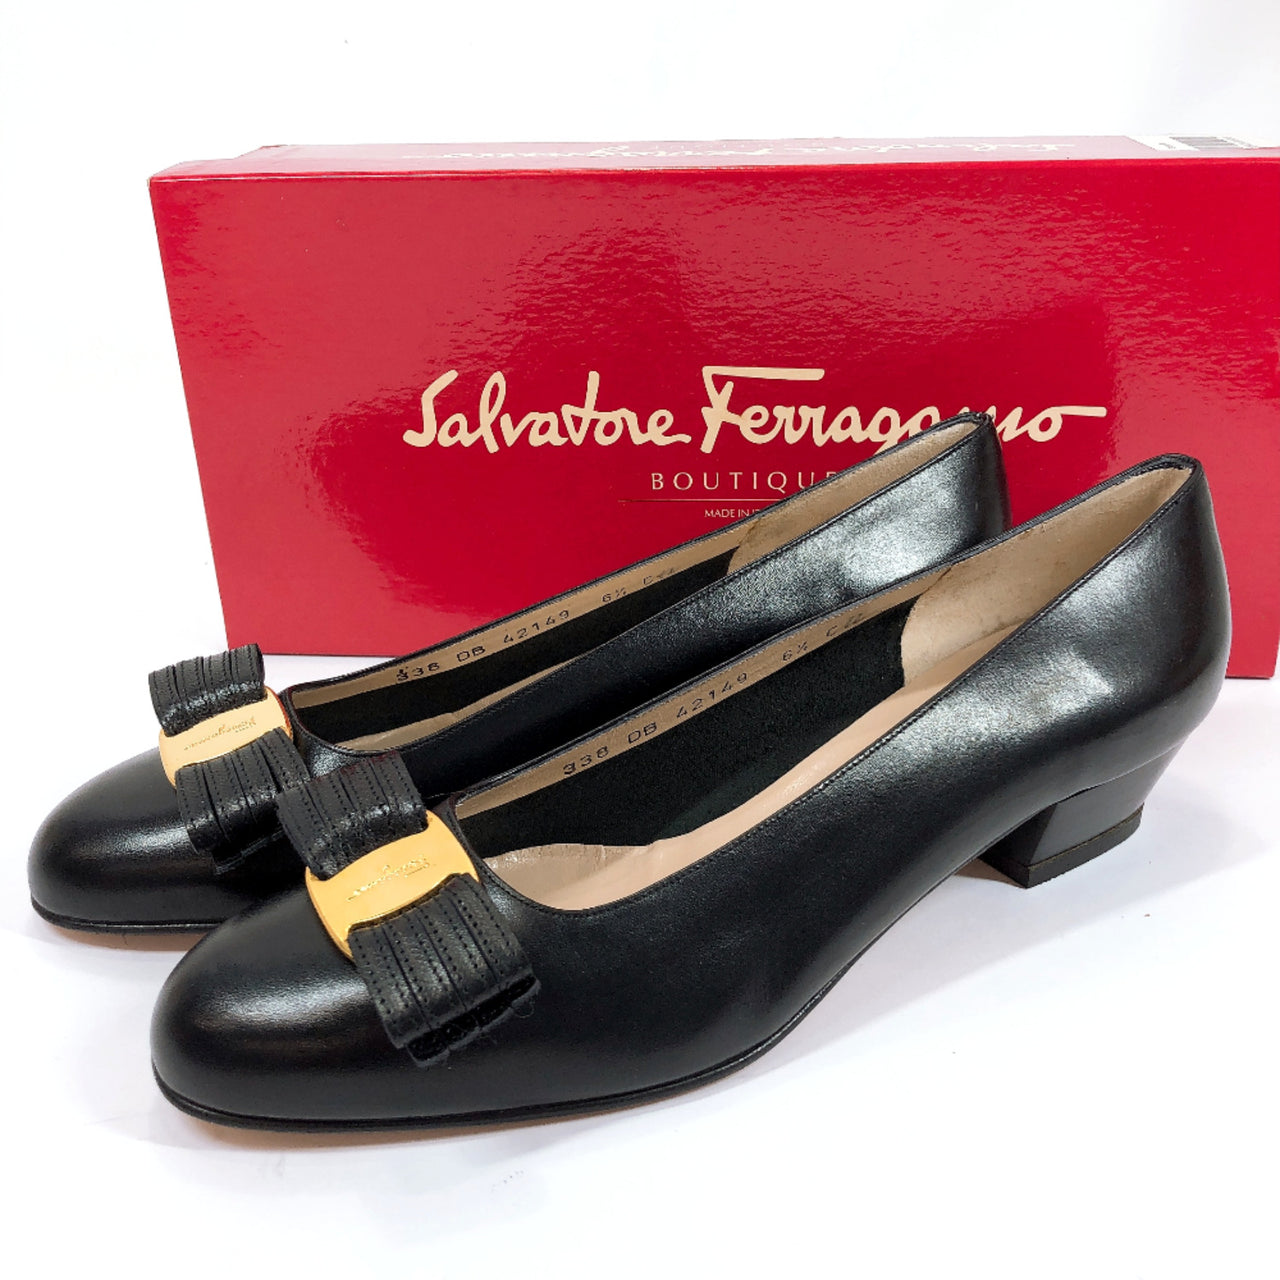 Salvatore Ferragamo pumps Vala leather black Women Used